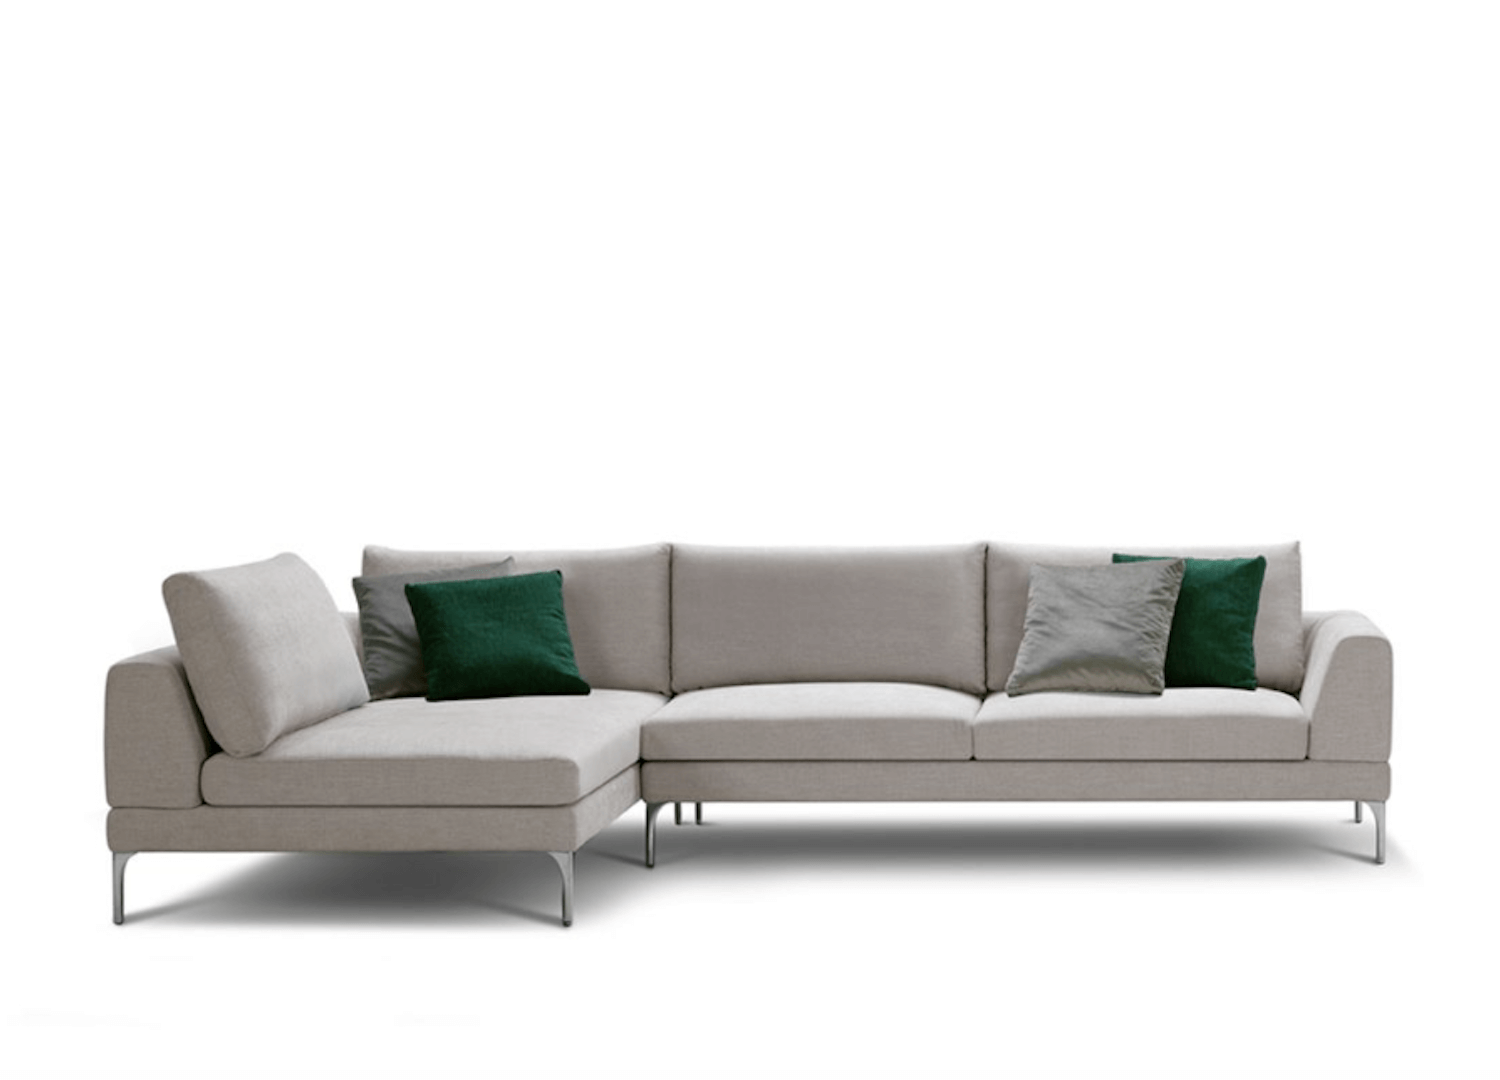 Plaza Sofa By King Living Est Living Design Directory - Sofa king furniture